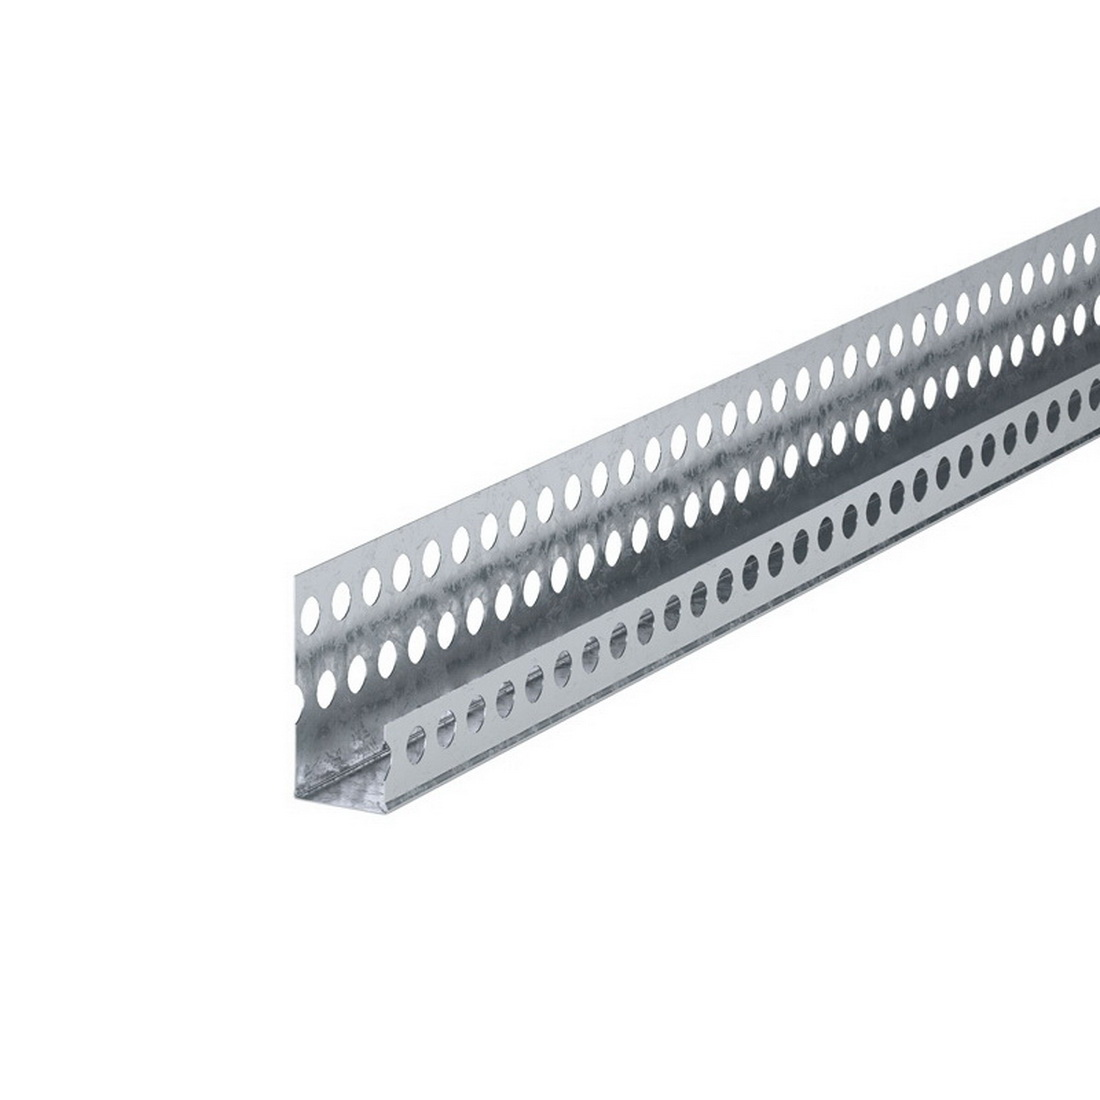 Rondo Stopping Plaster Casing Bead 10mm x 2400mm Galvanized Steel For P12